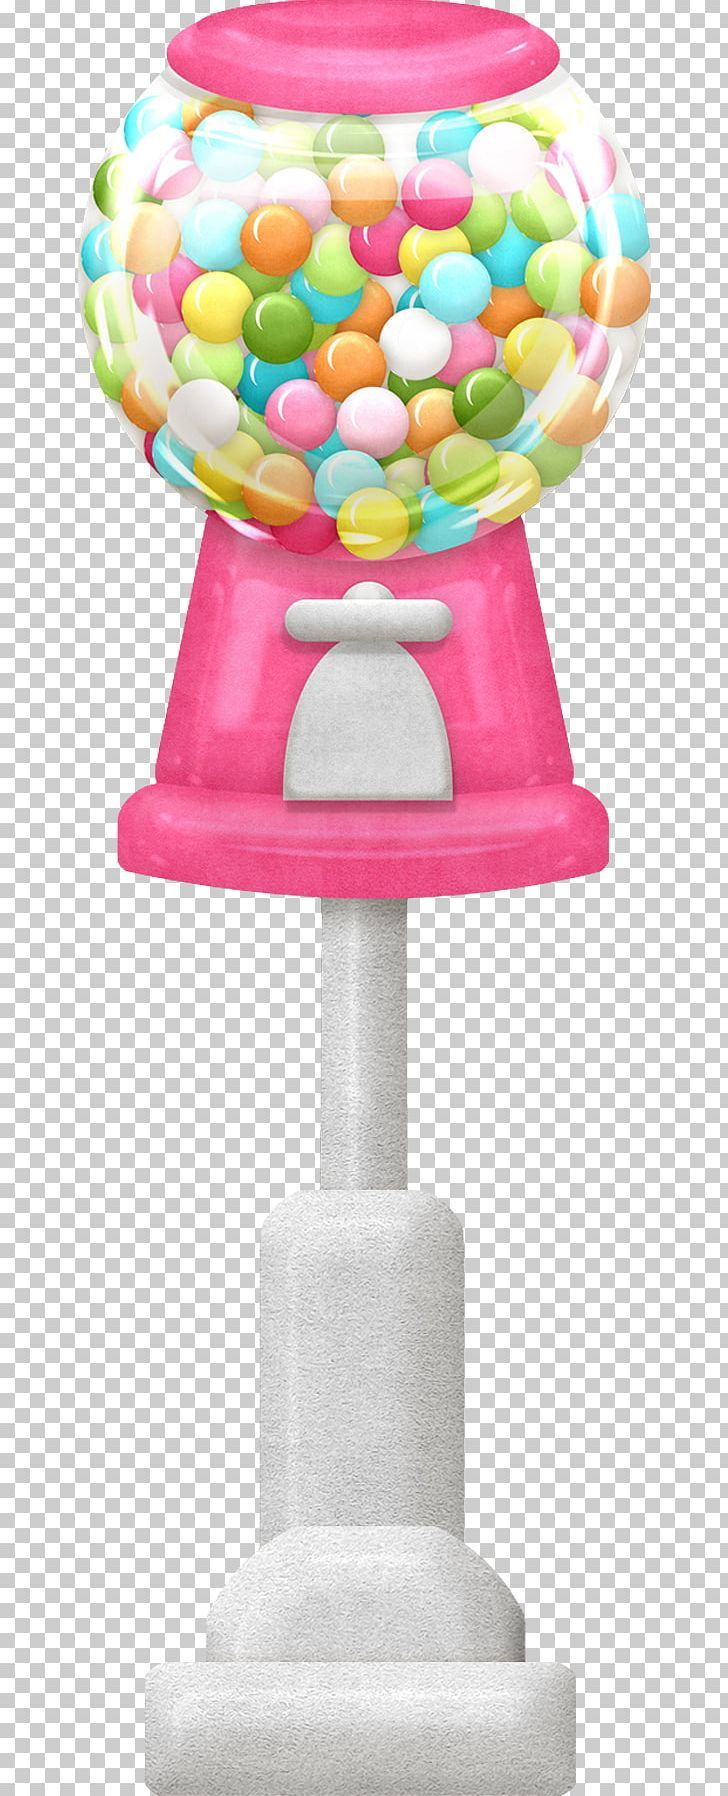 Chewing Gum Gumball Machine Candy Bubble Gum Png Beans Bubble Gum Cake Stand Candies Candy Bubble Gum Machine Bubble Gum Chewing Gum